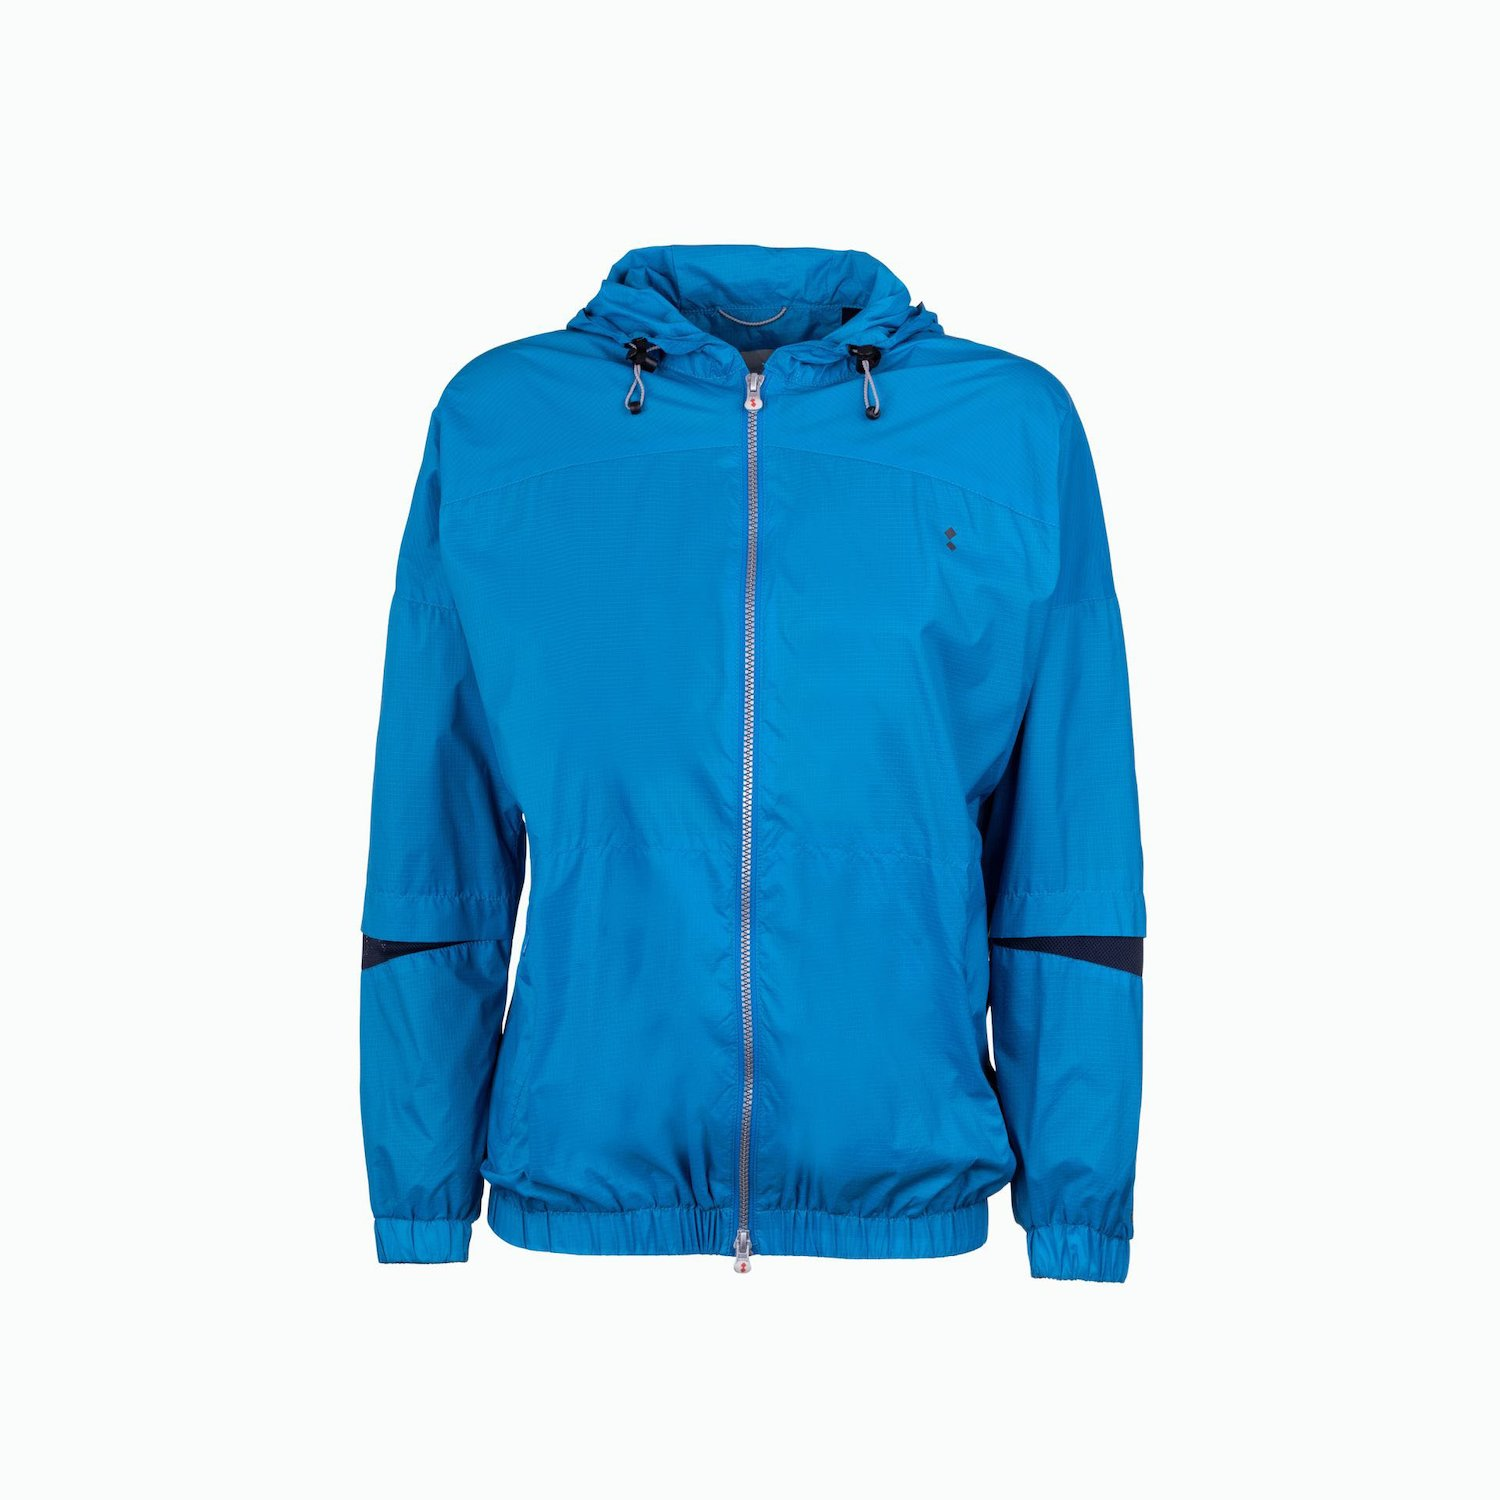 Rope Jacket - Azul Brillante